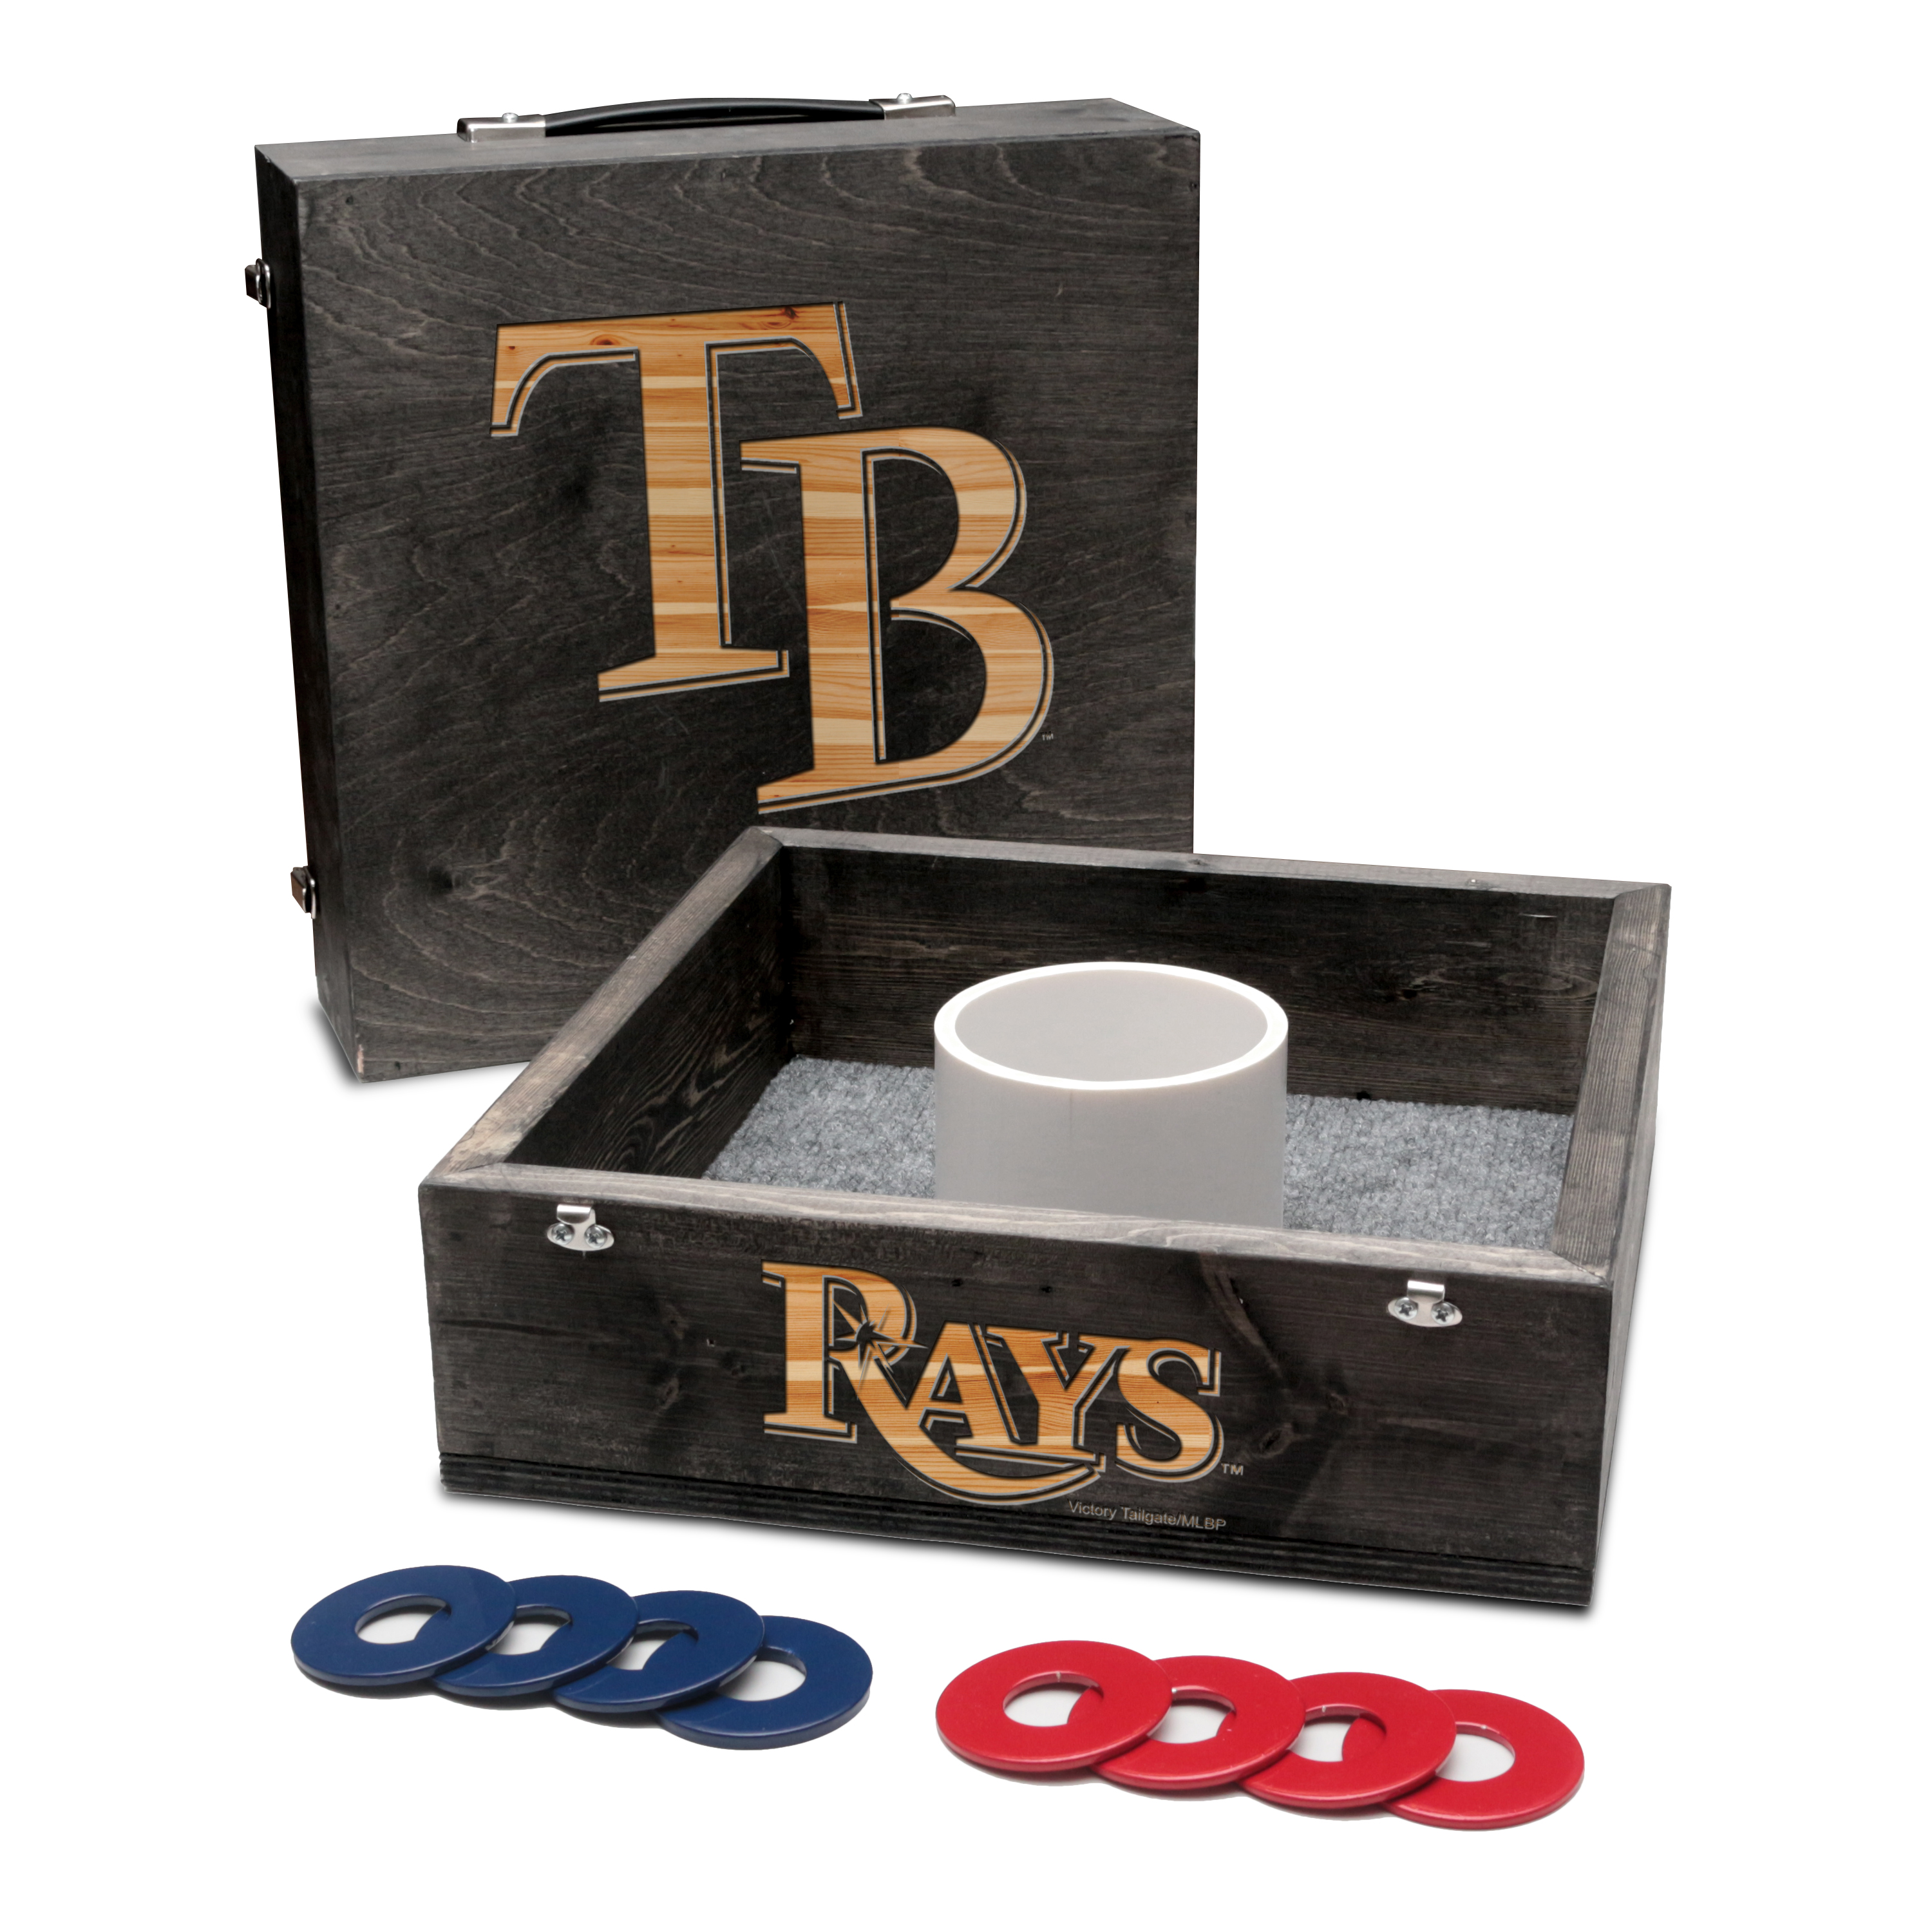 Tampa Bay Rays Washer Game Set Onyx Stained